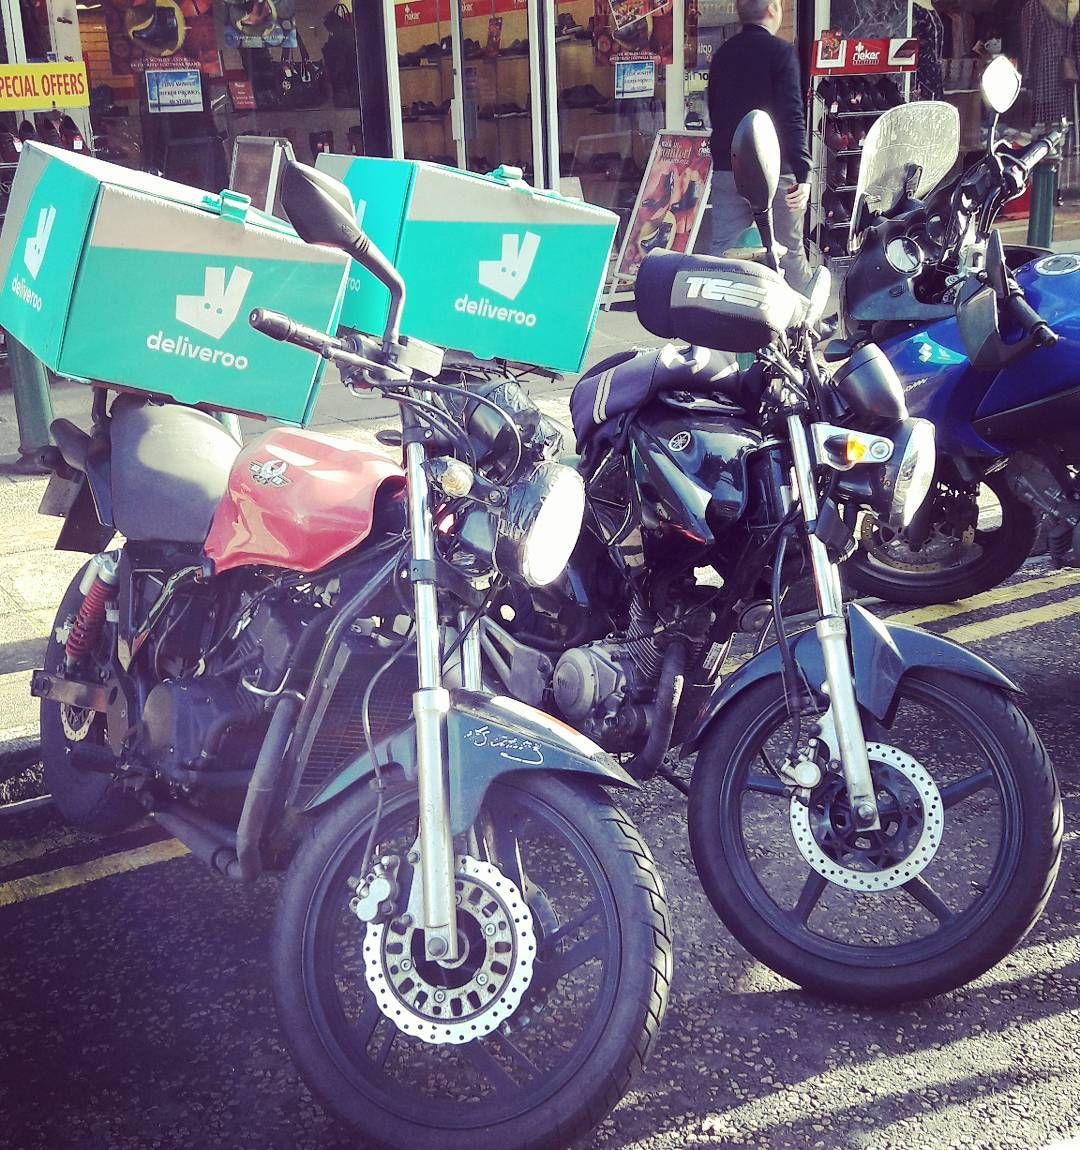 How Sweet A Couple Of Deliveroo Bikers Bikespotting Deliveroo